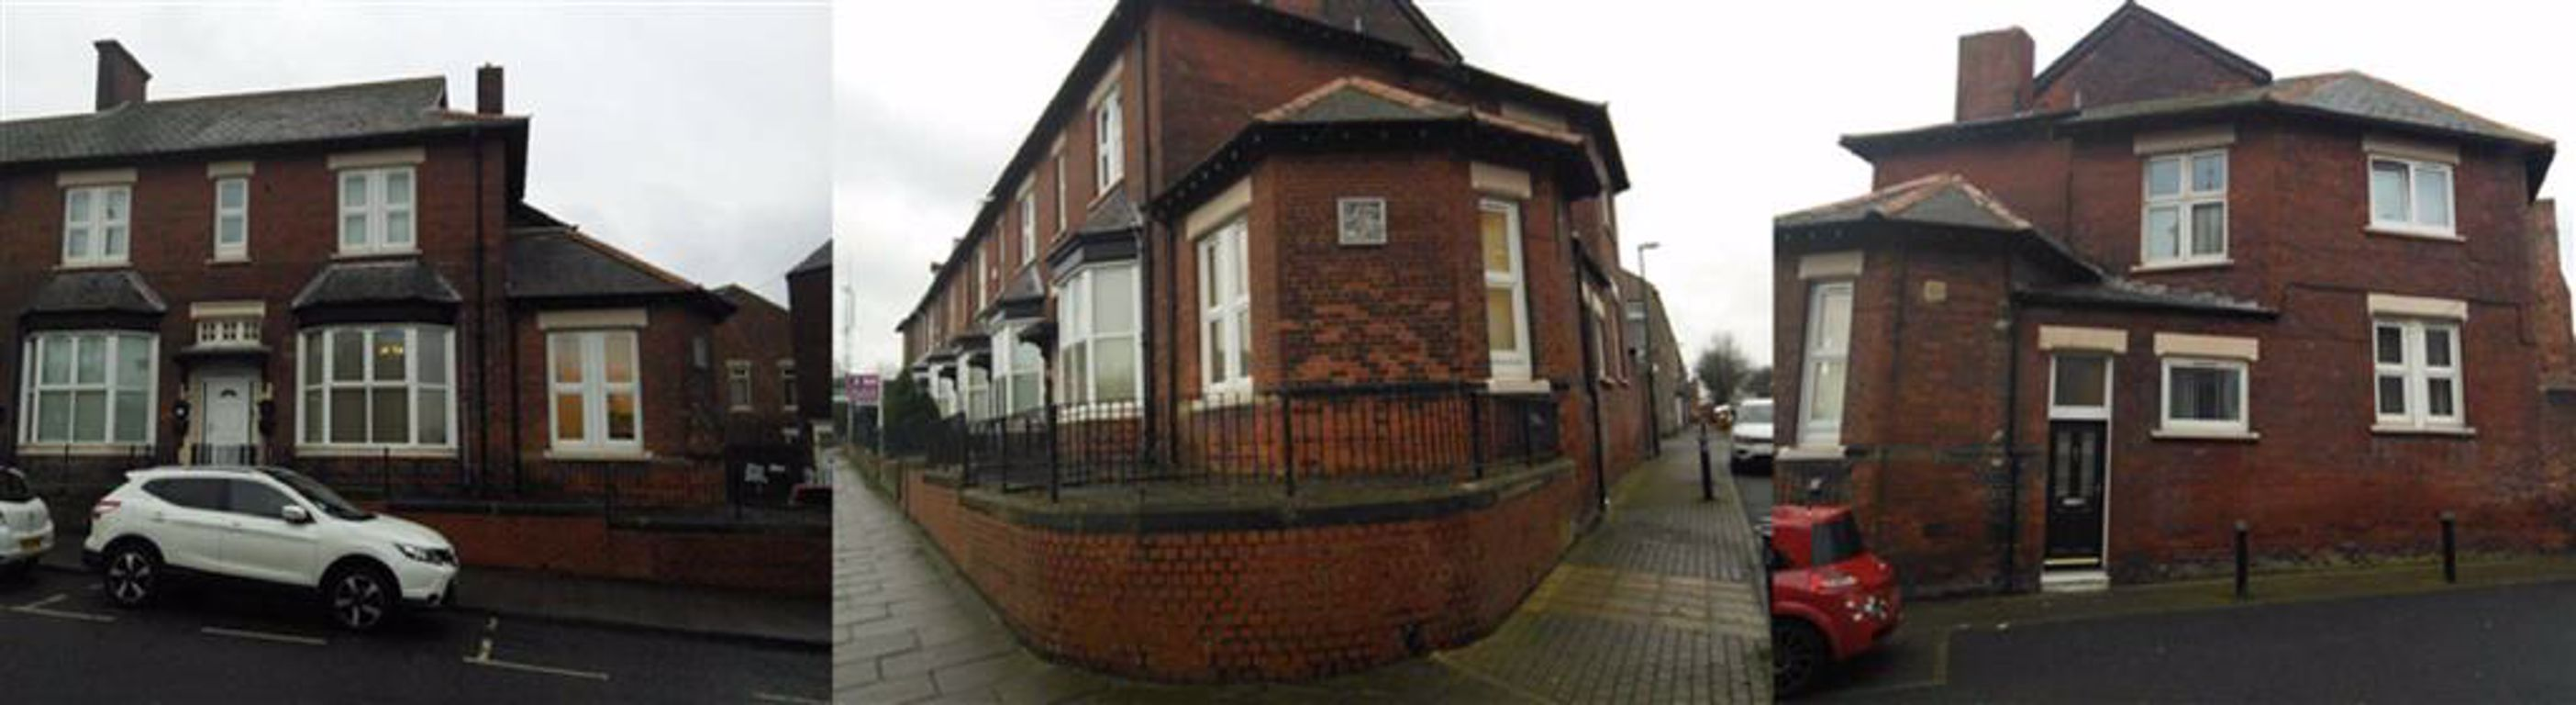 1 Bedroom Flat – Property for Auction South Shields – Laygate, South Shields – £32,500